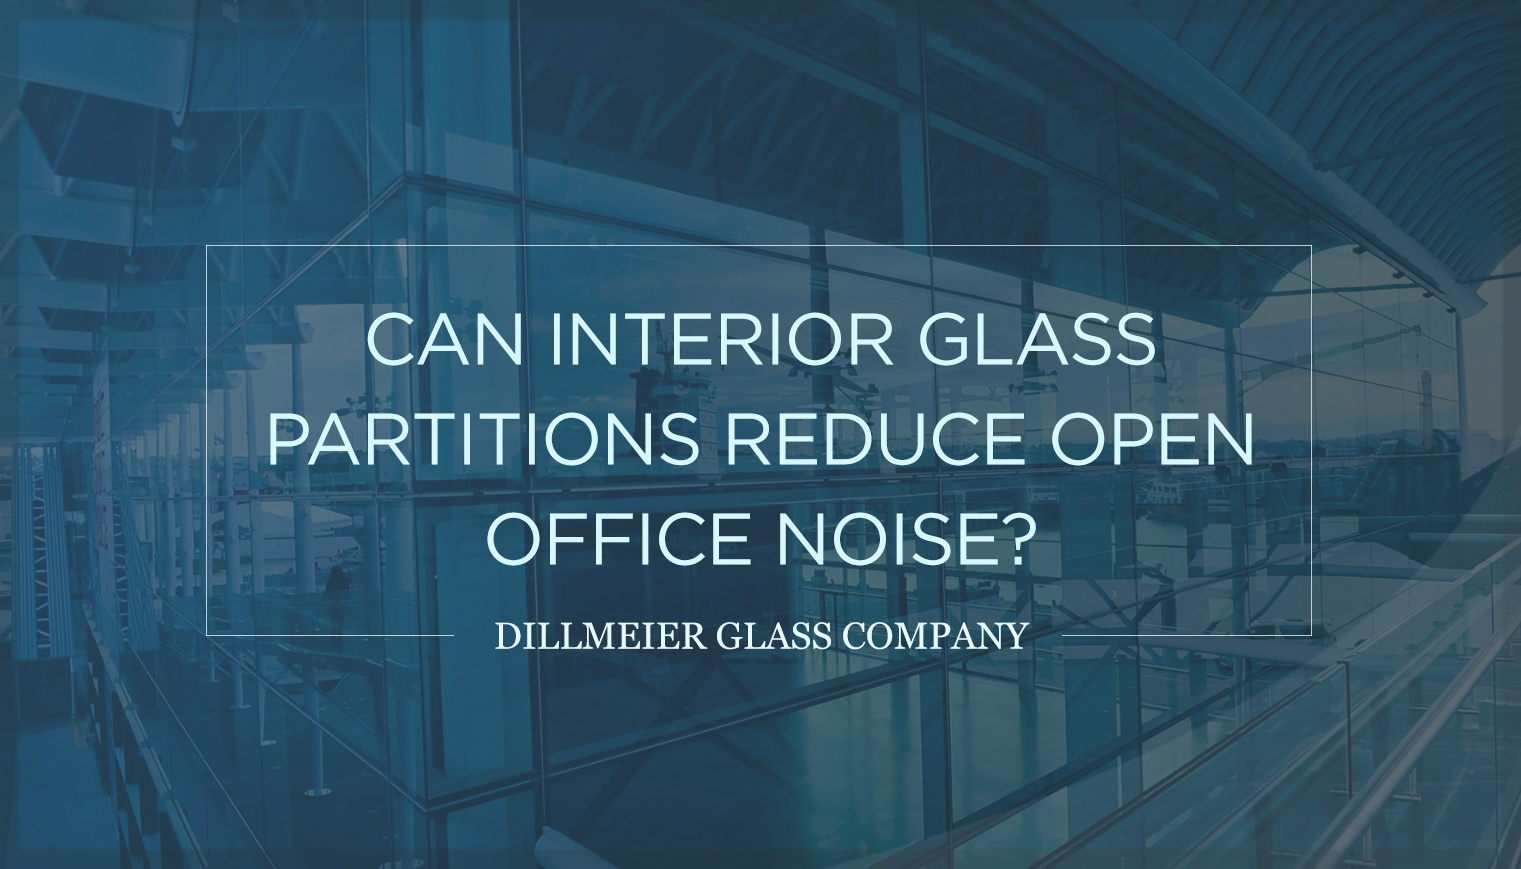 Can-Interior-Glass-Partitions-Reduce-Open-Office-Noise-